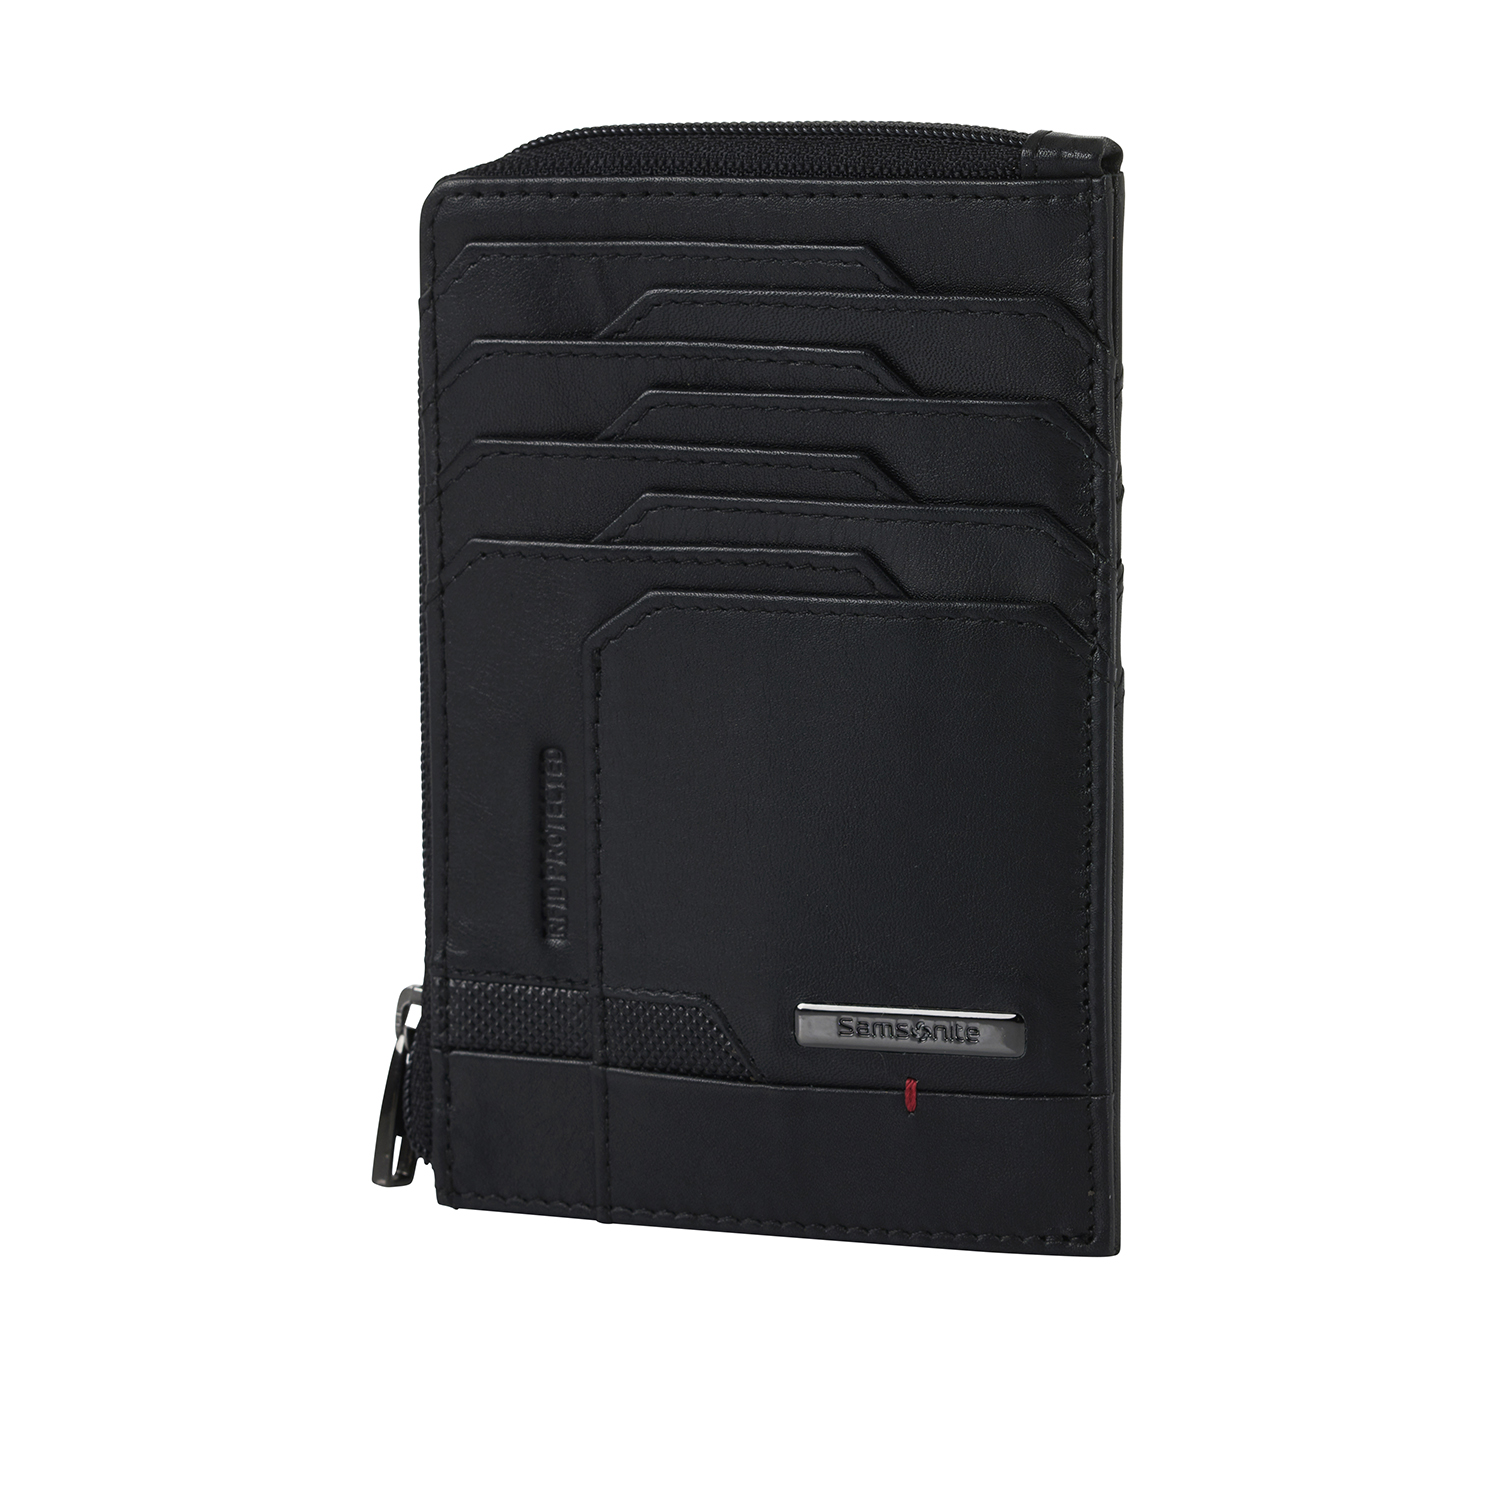 PRO-DLX 5 SLG-727-ALL IN ONE WALLET ZIP SCR4-727-SF000*09